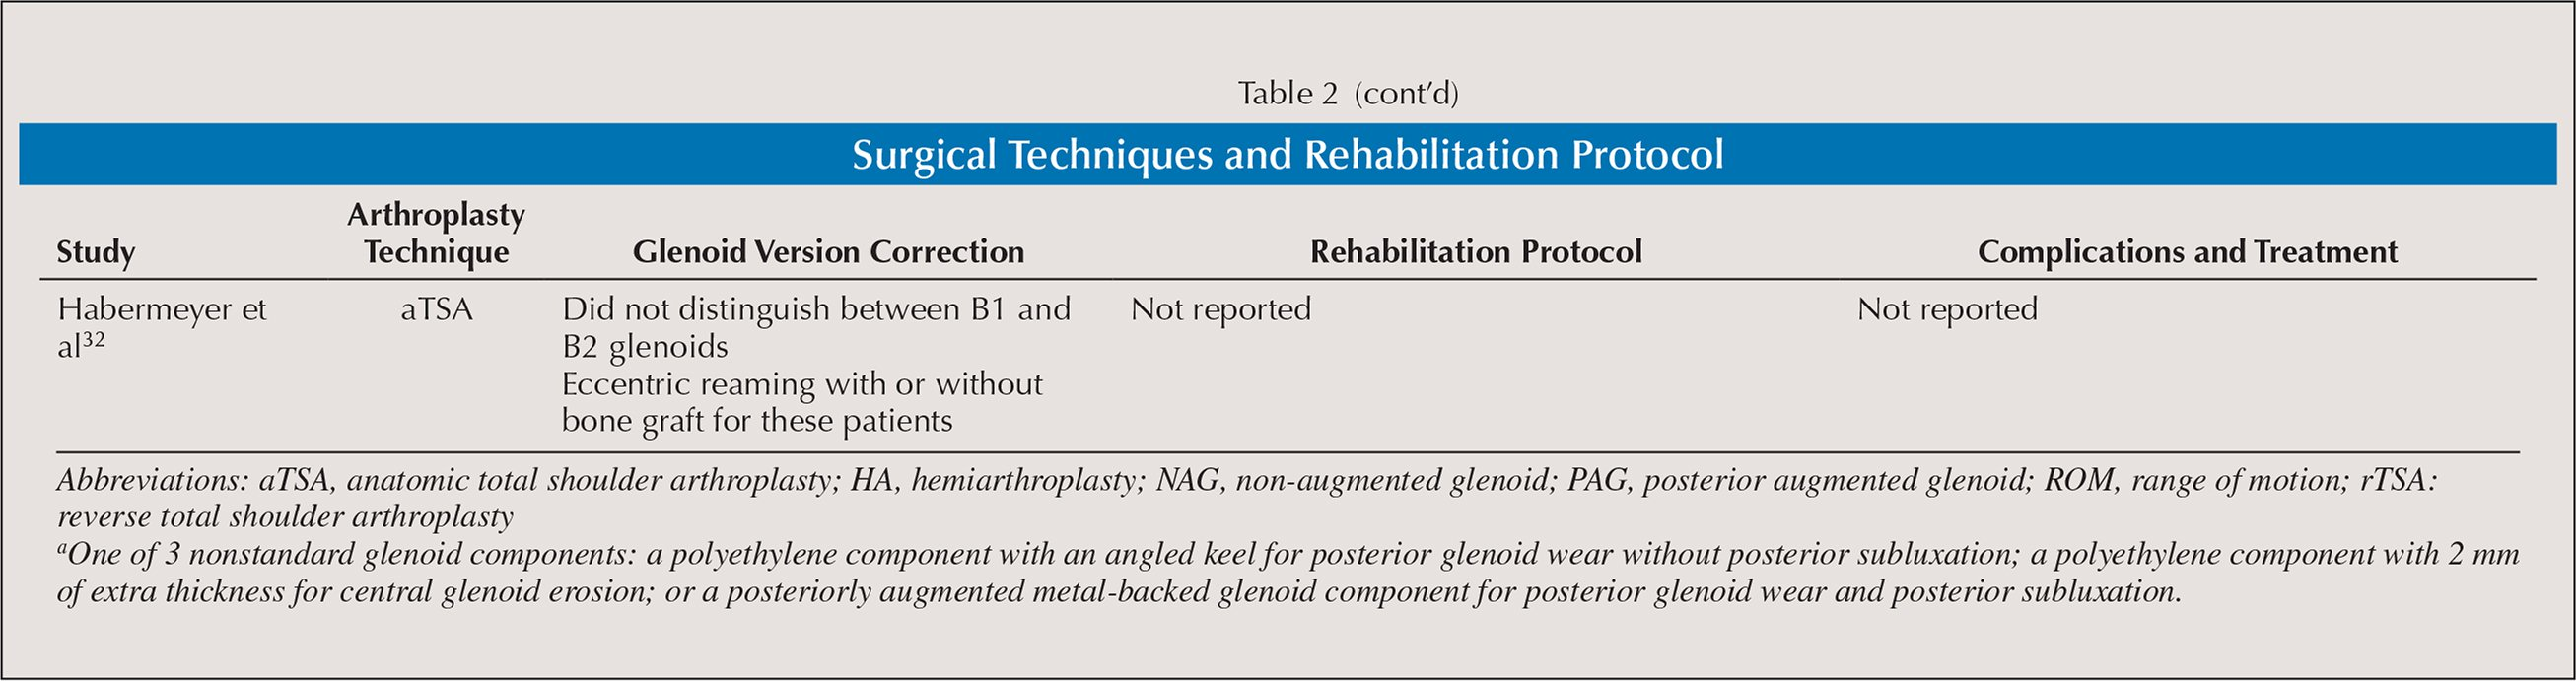 Surgical Techniques and Rehabilitation Protocol